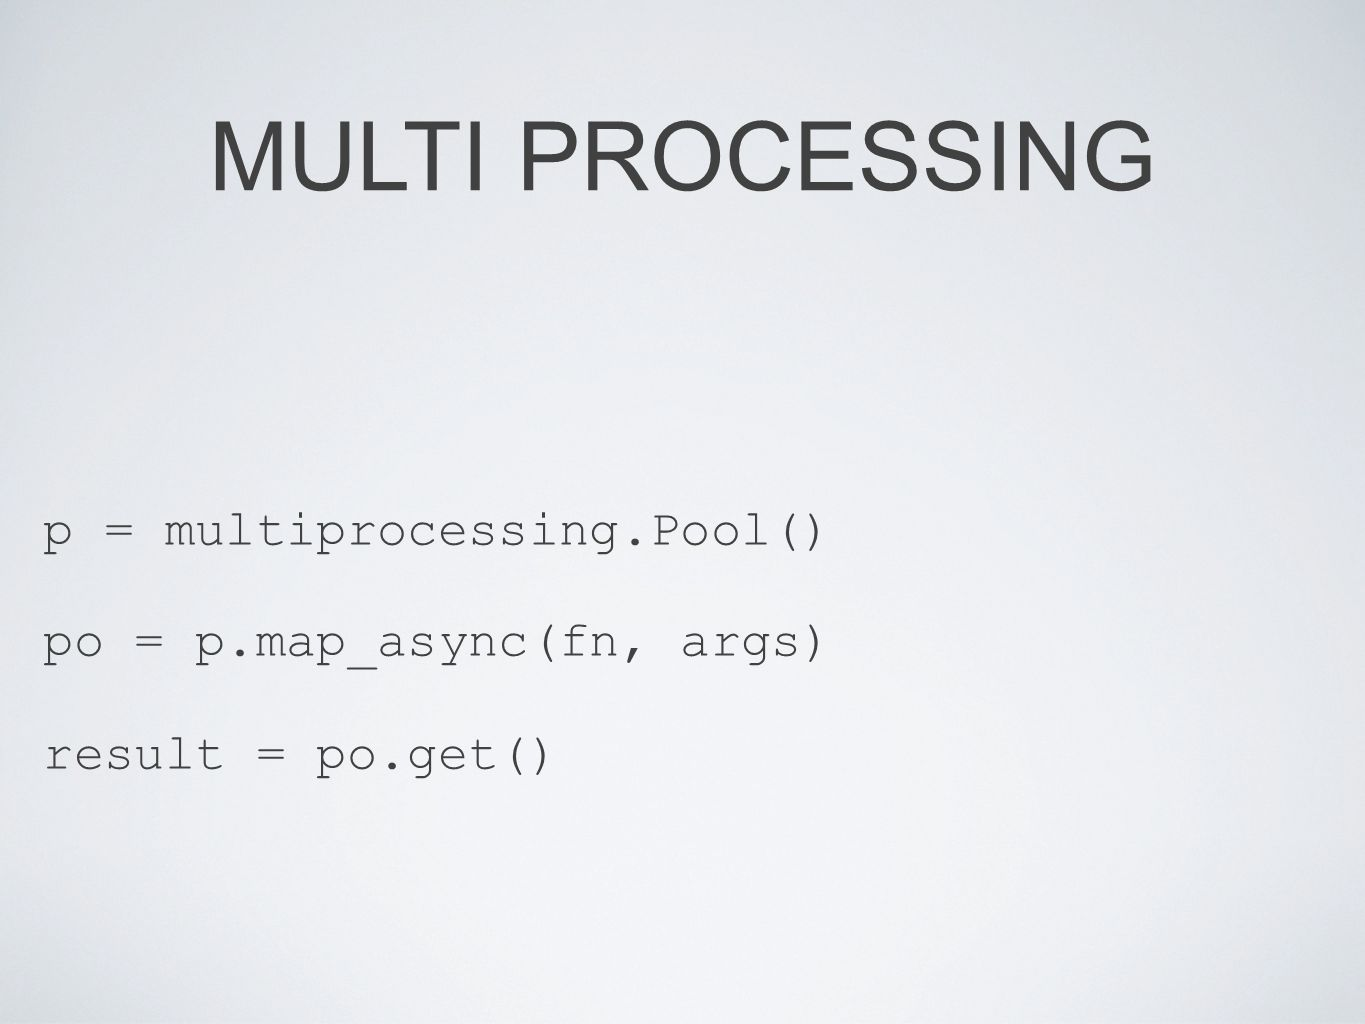 MULTI PROCESSING p = multiprocessing.Pool() po = p.map_async(fn, args) result = po.get()